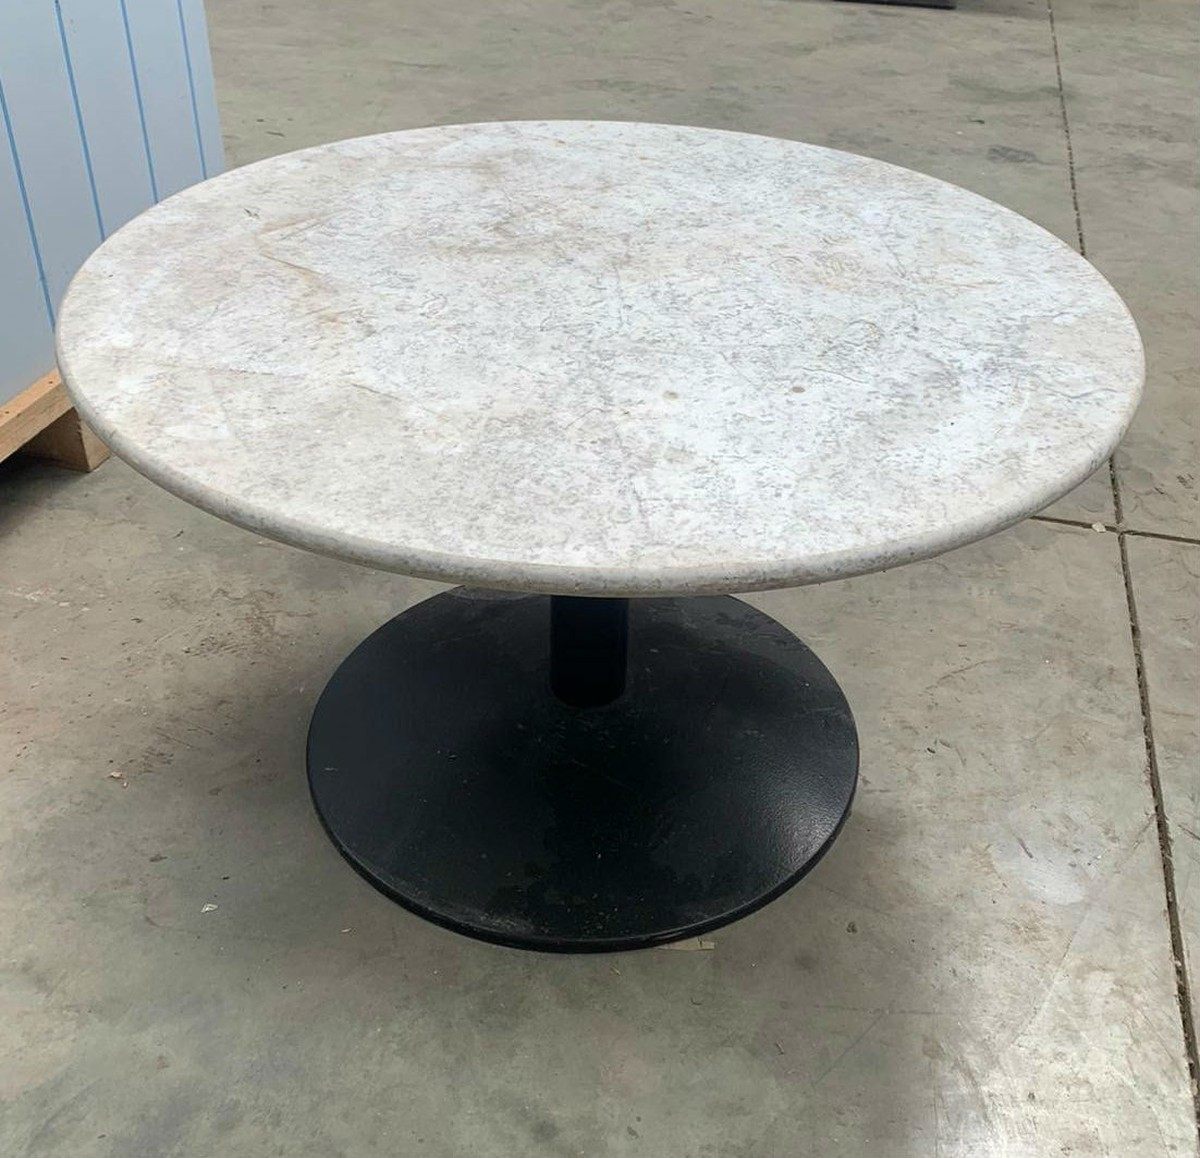 Secondhand Chairs And Tables Restaurant Or Cafe Tables Marble Table 85cm Diameter London